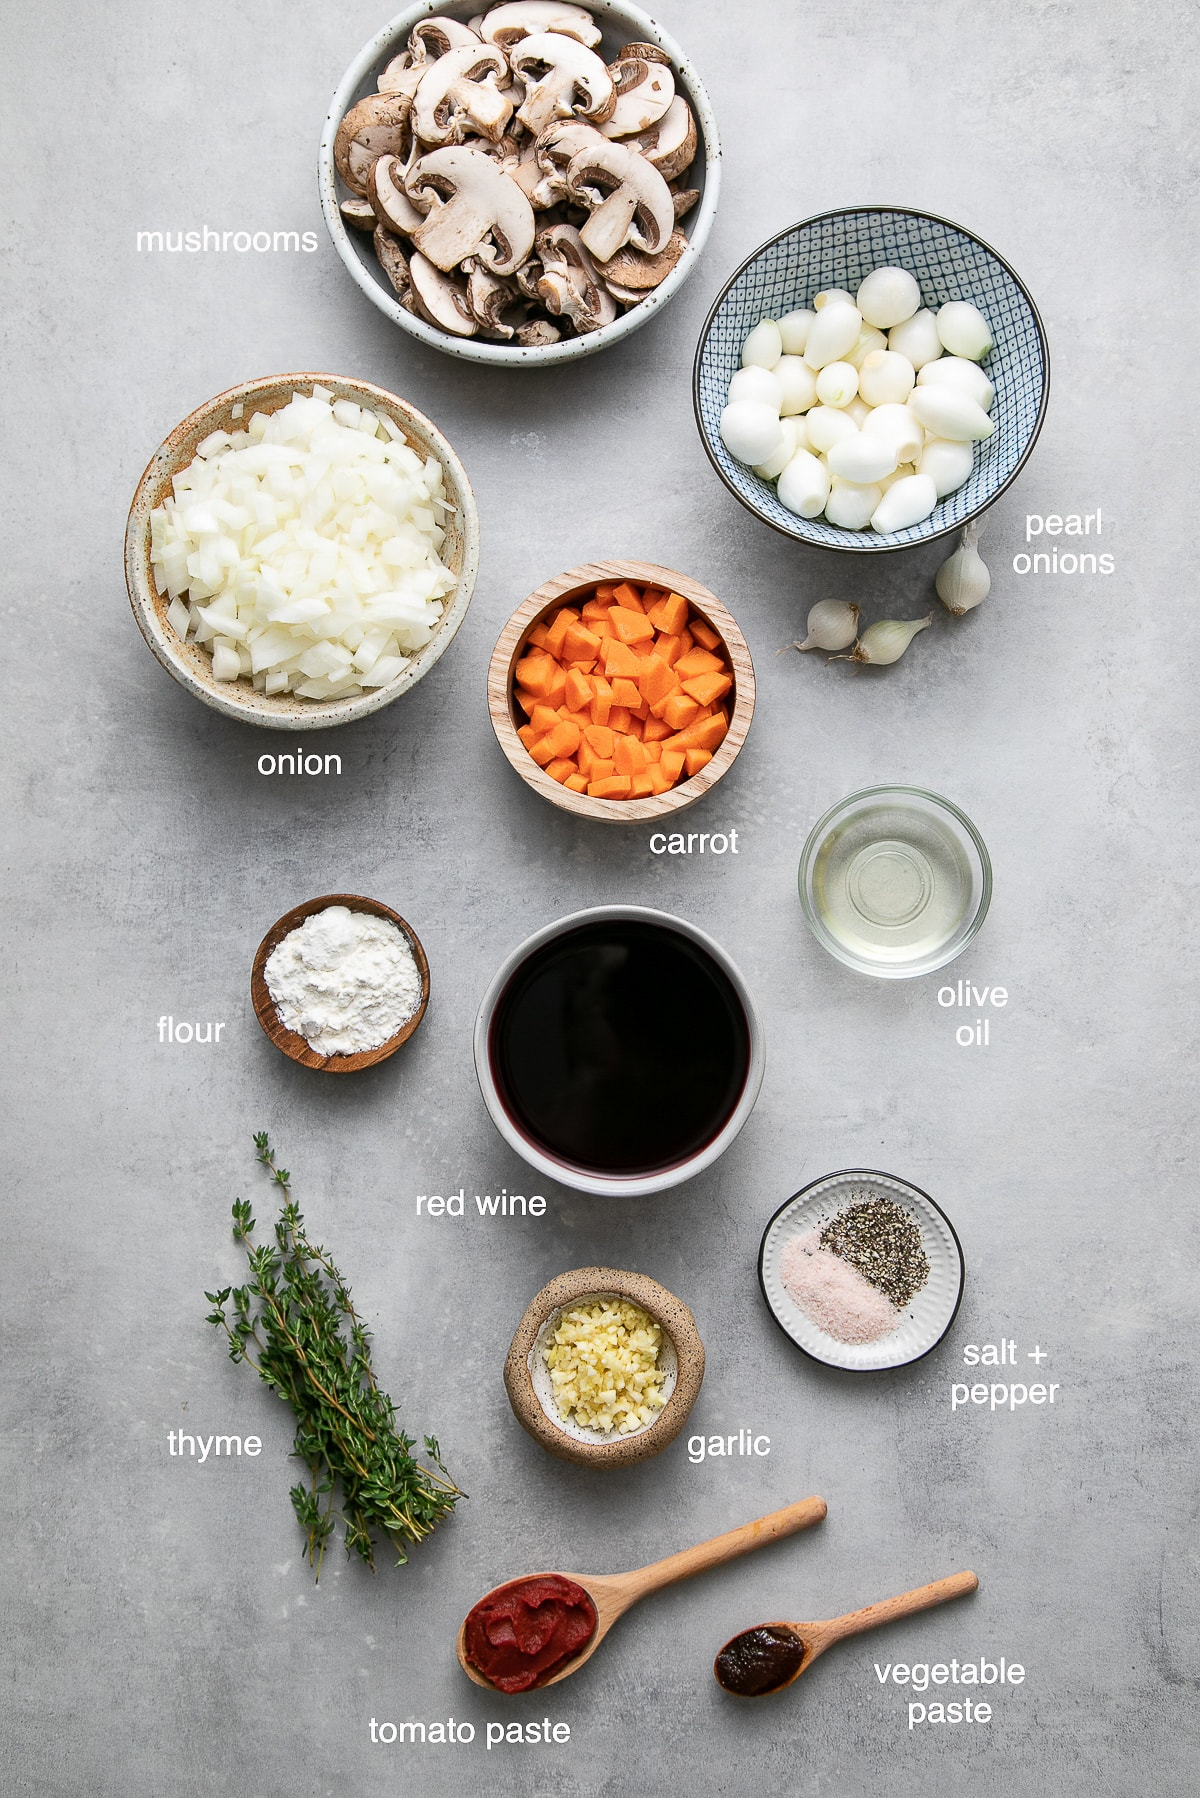 top down view of the ingredients used to make easy mushroom bourguignon.